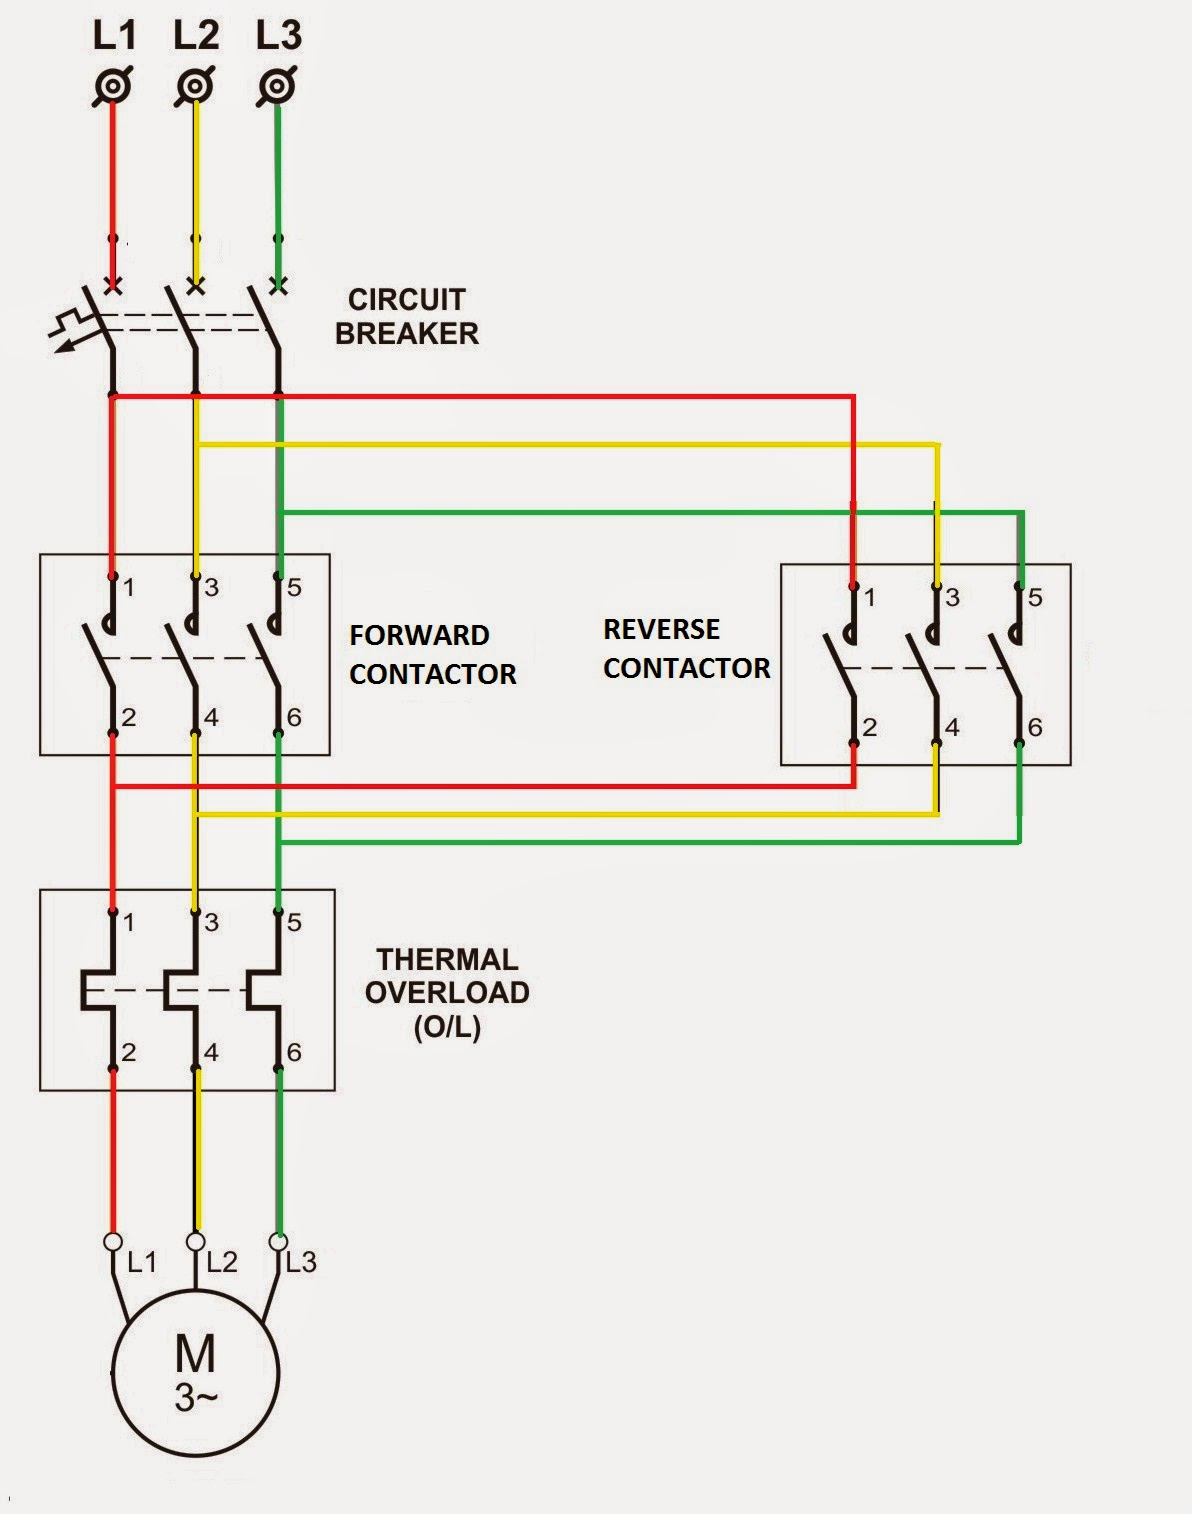 overload relay wiring diagram motor overload relay wiring diagrams electrical standards: overload relay working principle and ...